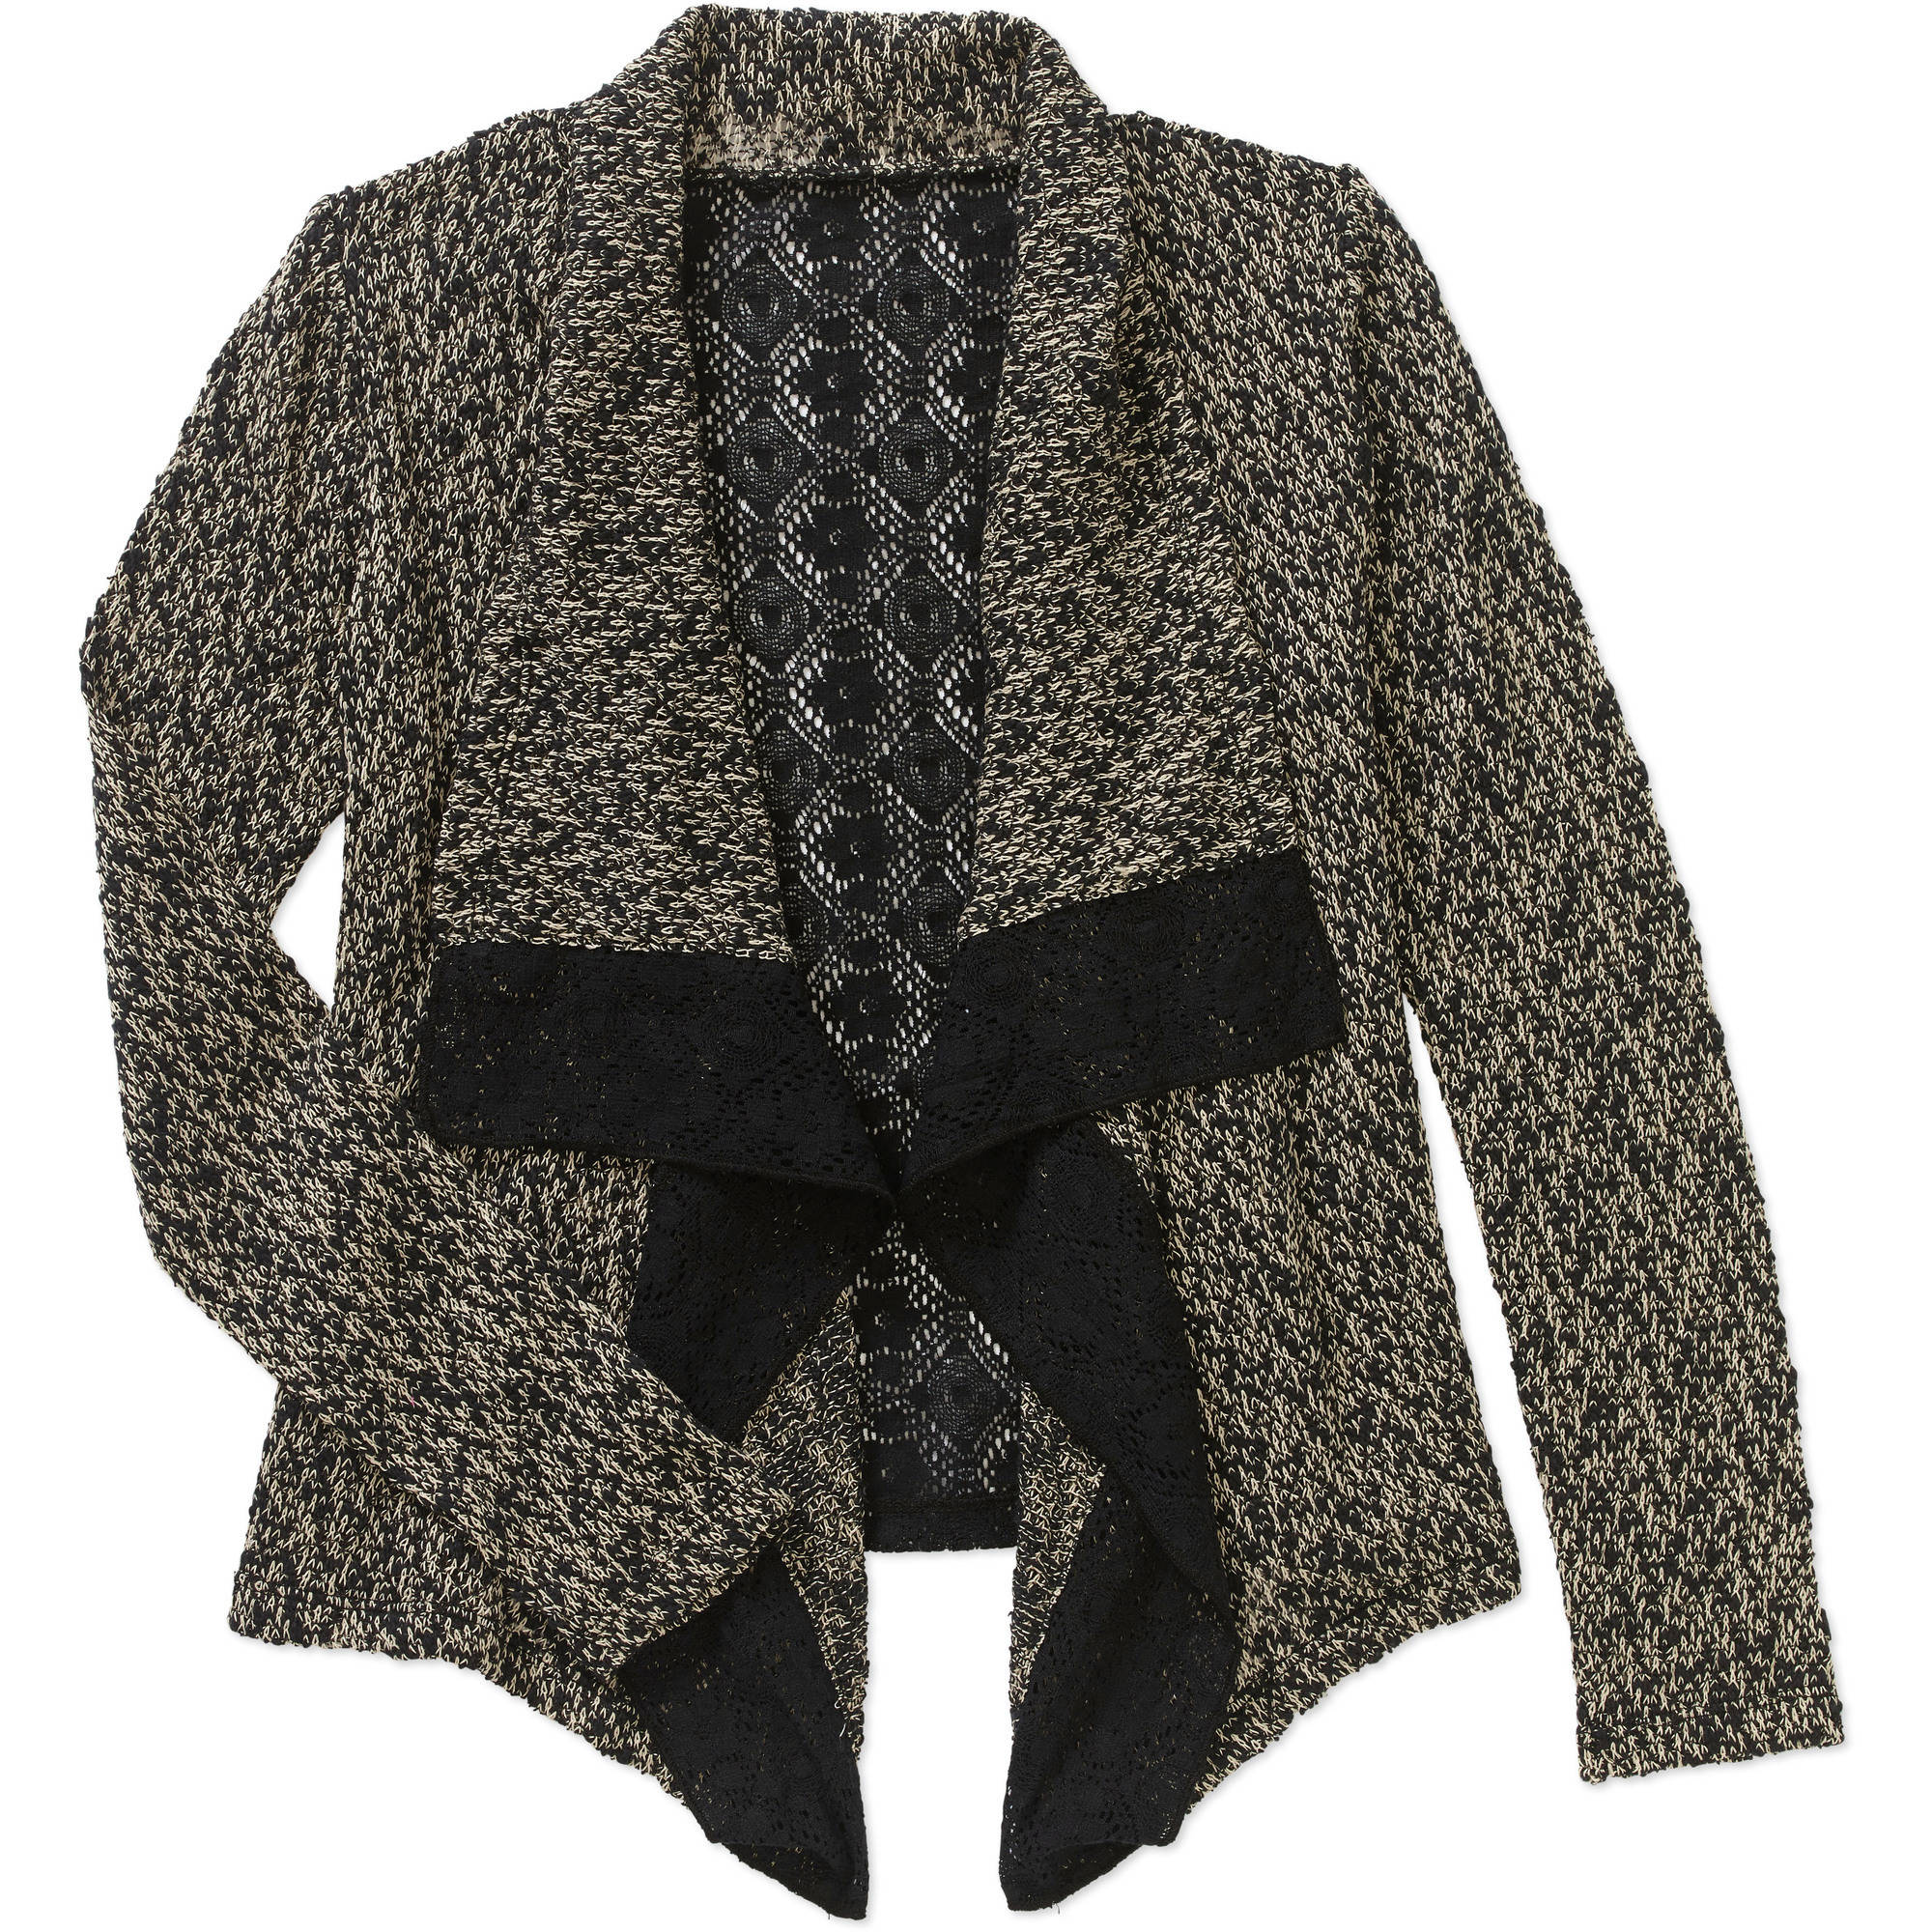 Girls Cardigan with Lace Trim and Lace Panel